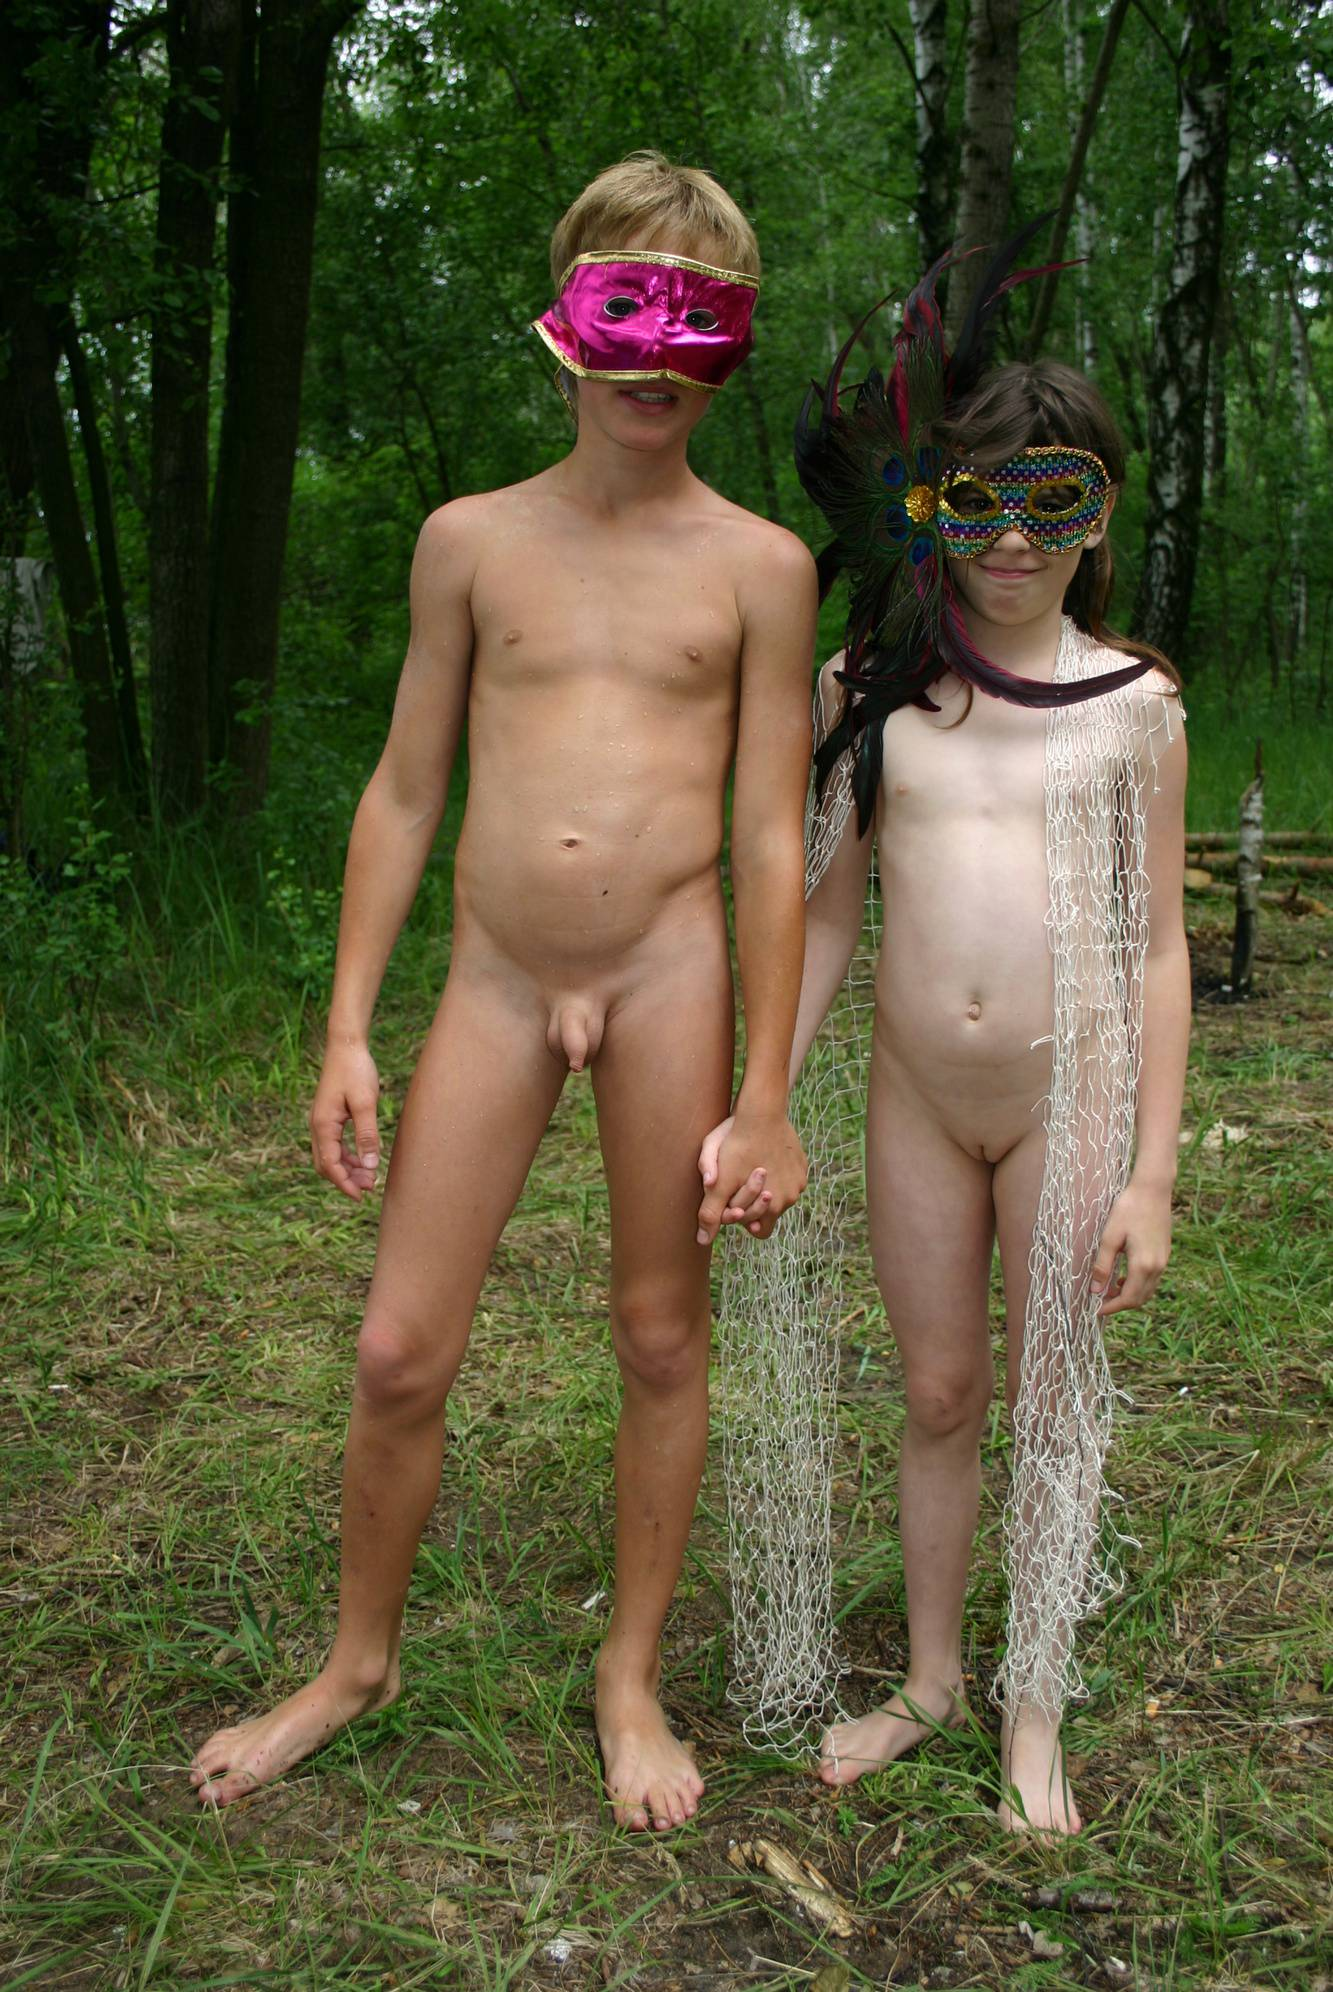 Pure Nudism Pics-Dare to Be Bare Nets - 4